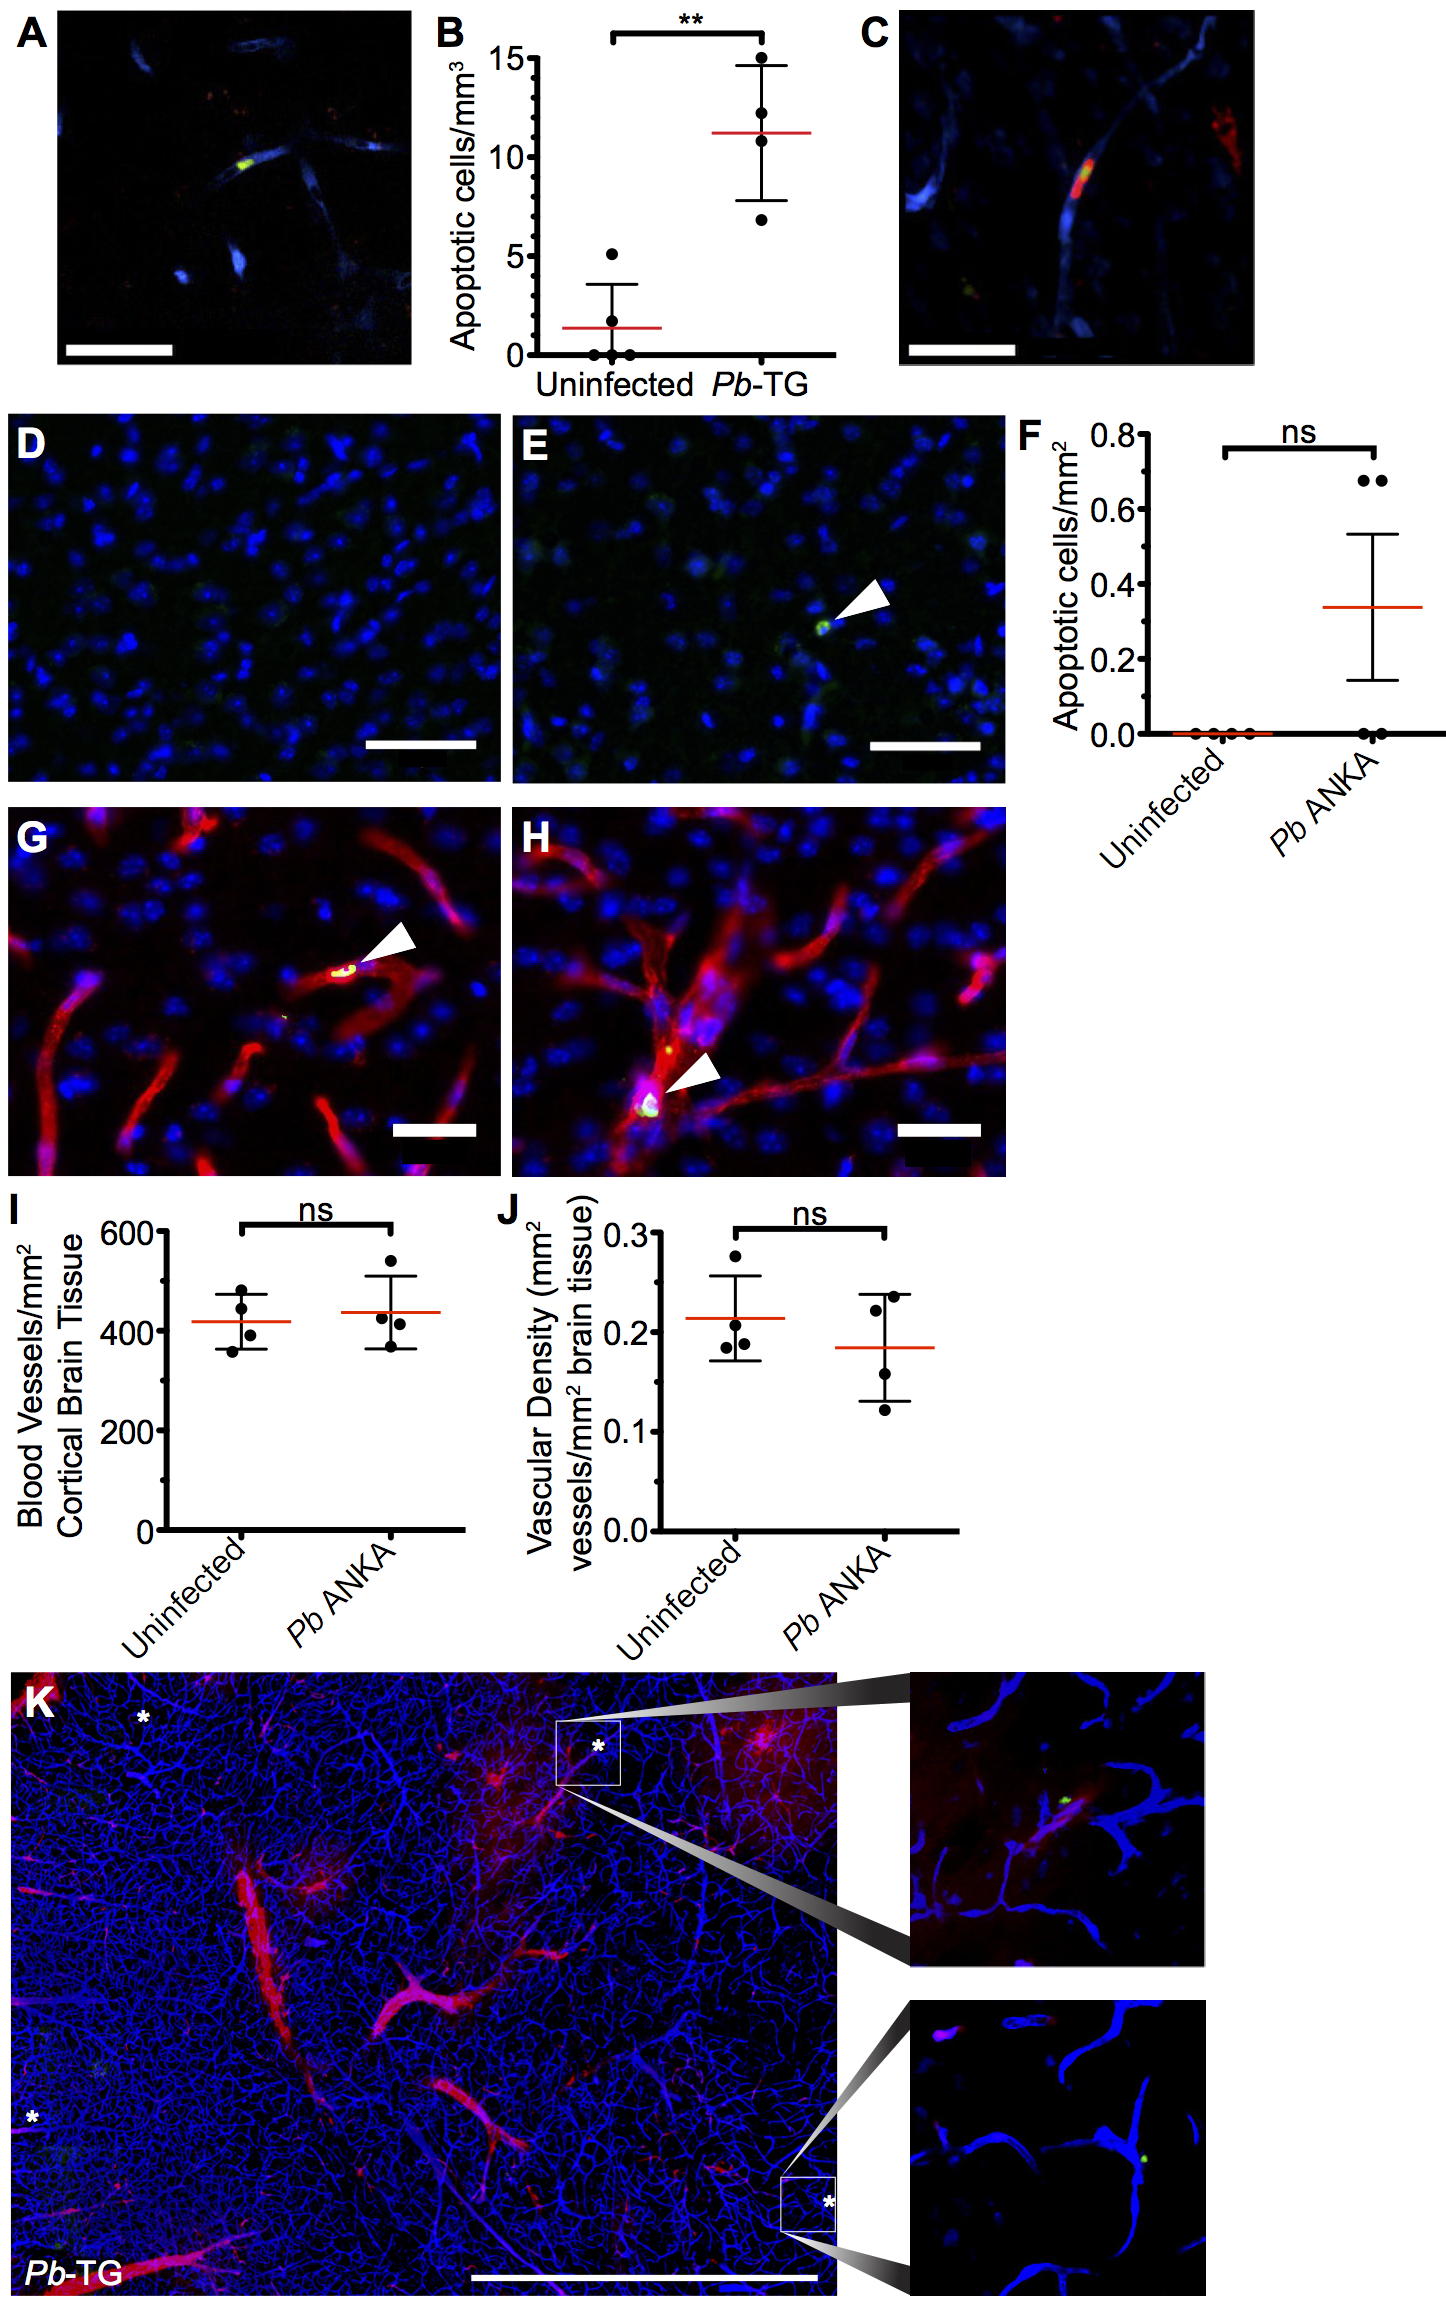 Widespread apoptosis or loss of vasculature does not occur in the brains of mice with ECM.